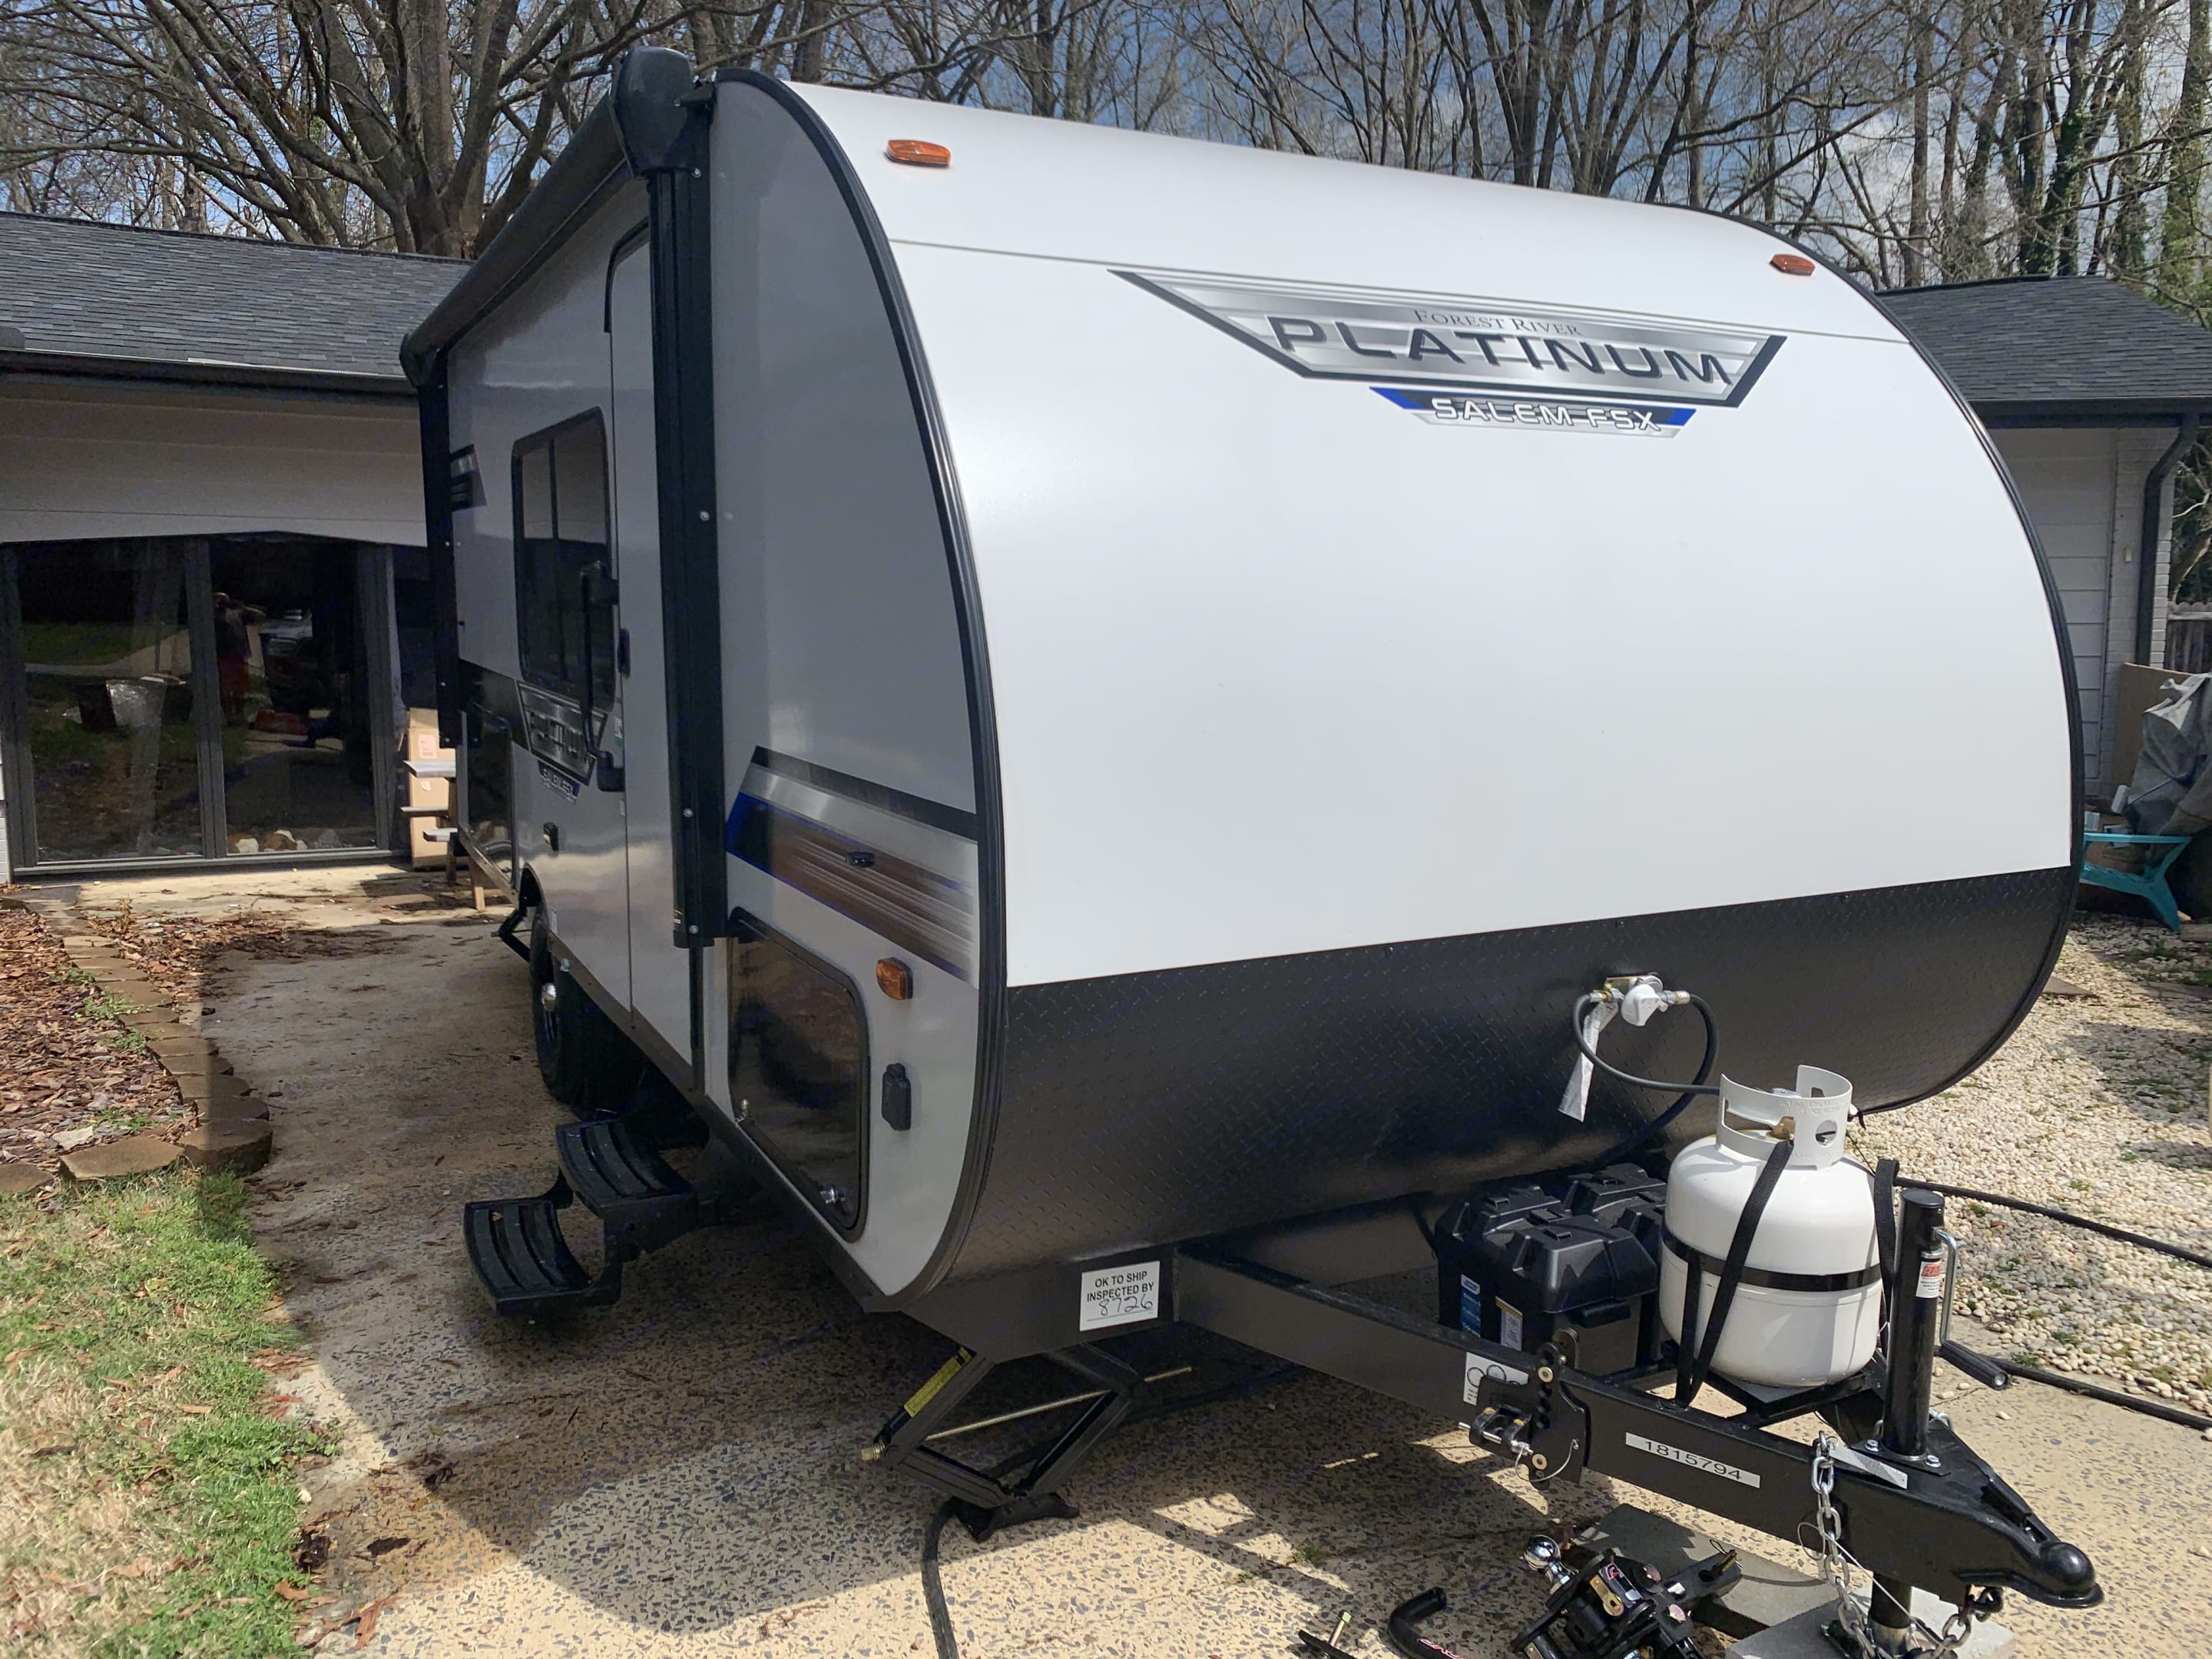 Has propane and 2 batteries. As well as an load distribution hitch. Forest River Salem 2021